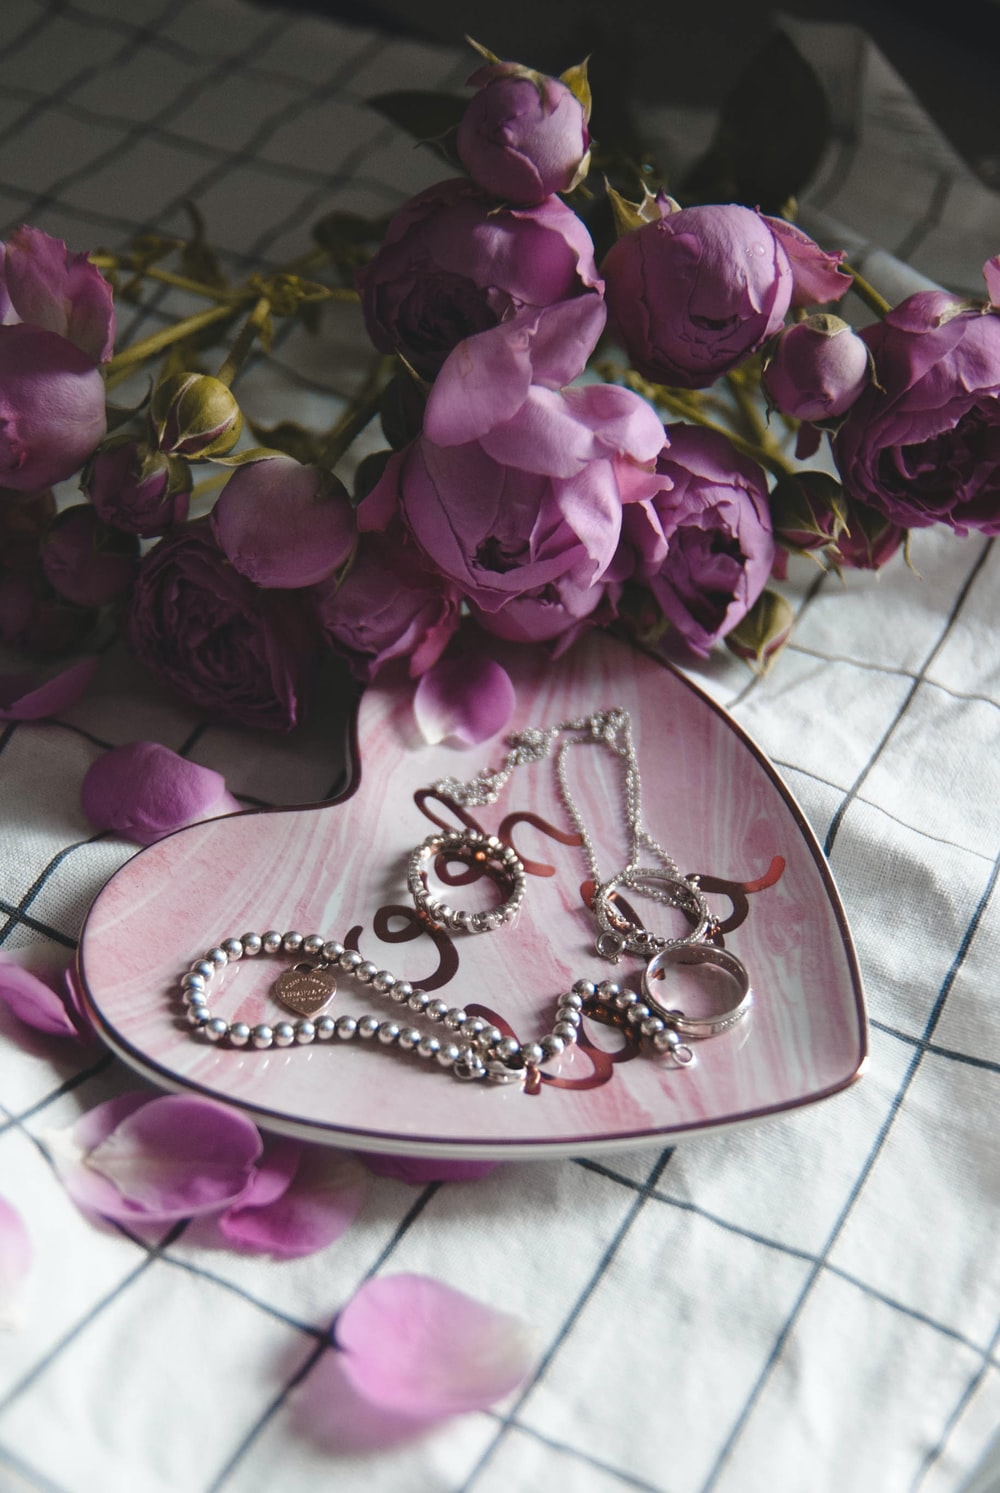 silver-colored rings and bracelet on plate with pink roses